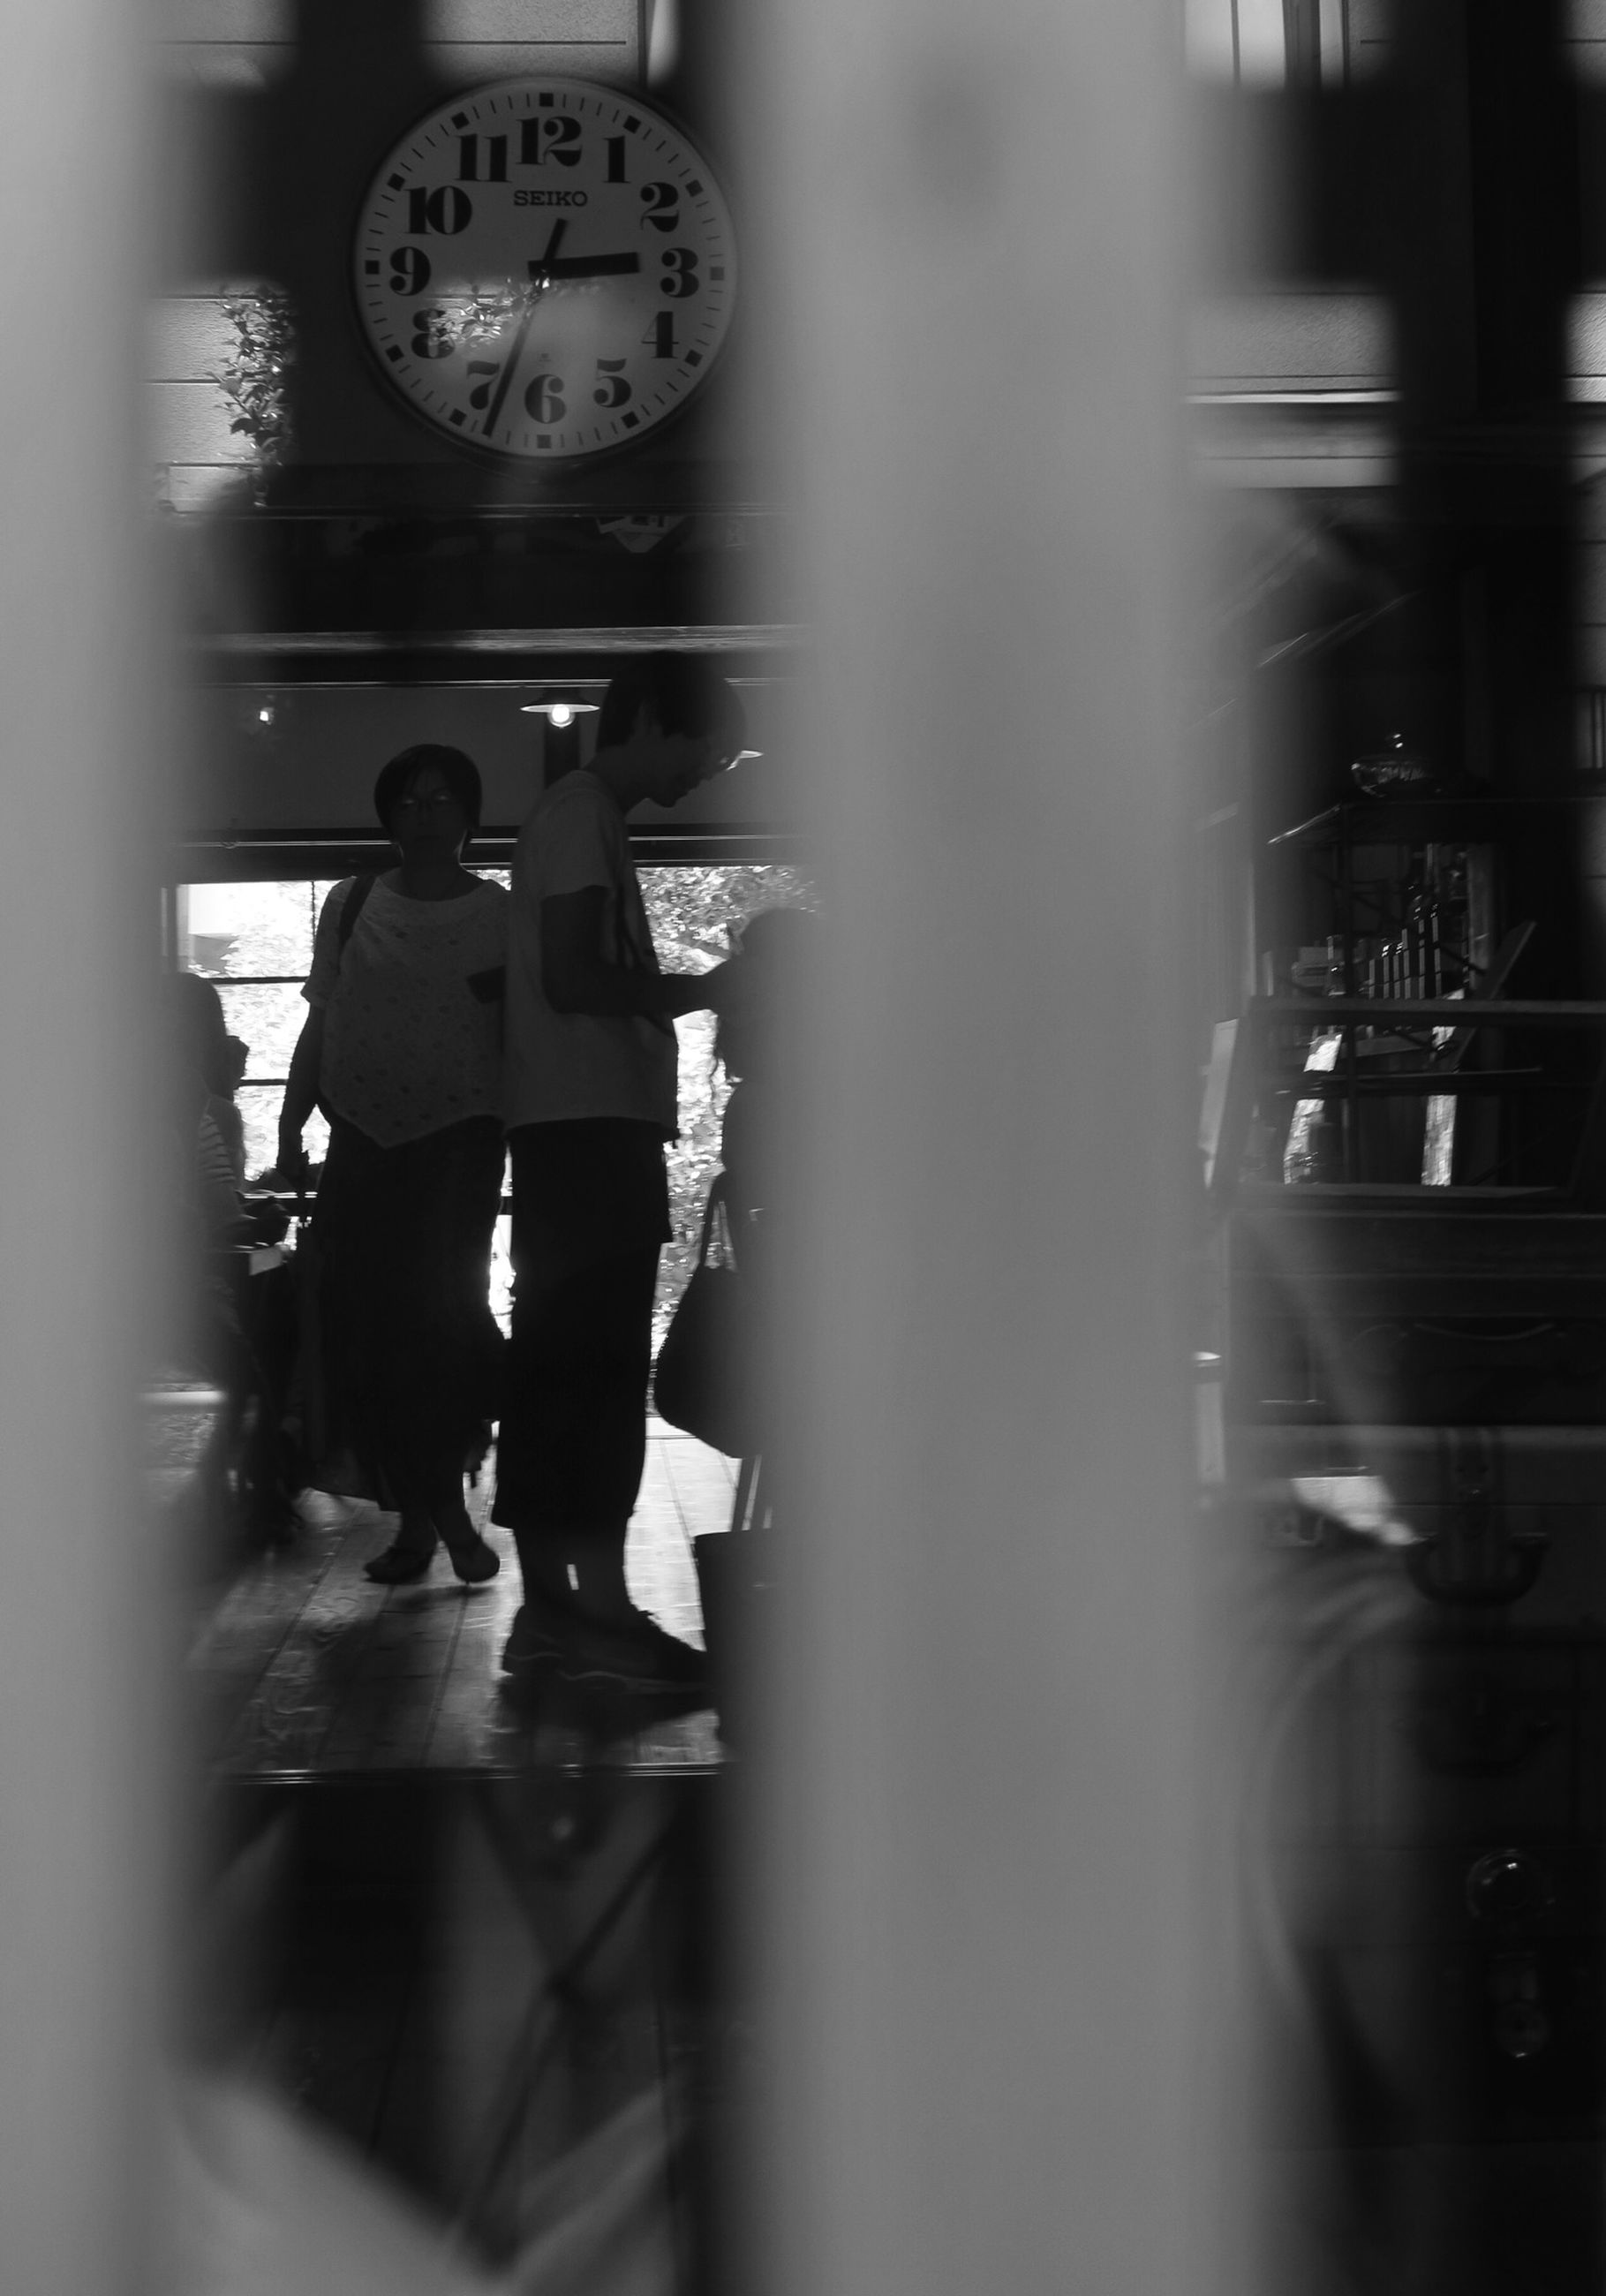 clock, time, real people, indoors, focus on background, selective focus, occupation, two people, men, standing, women, working, day, young adult, clock face, people